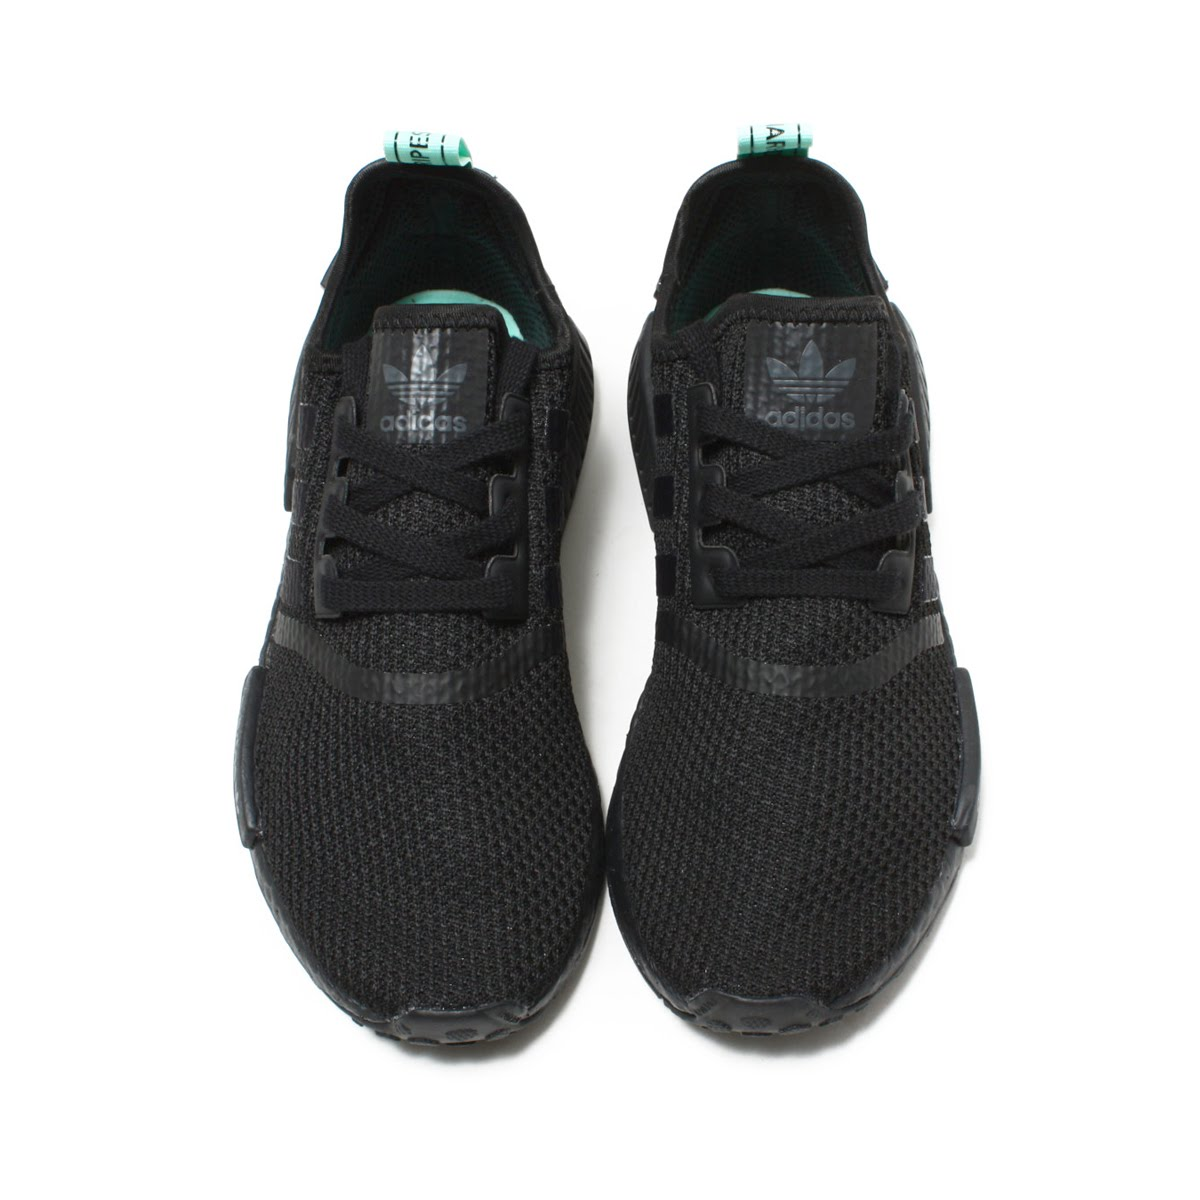 save off 5cecc ef1e3 adidas Originals NMD R1 W (Adidas originals N M D R1 W) Core BlackCore  BlackClear Mint 18FW-I